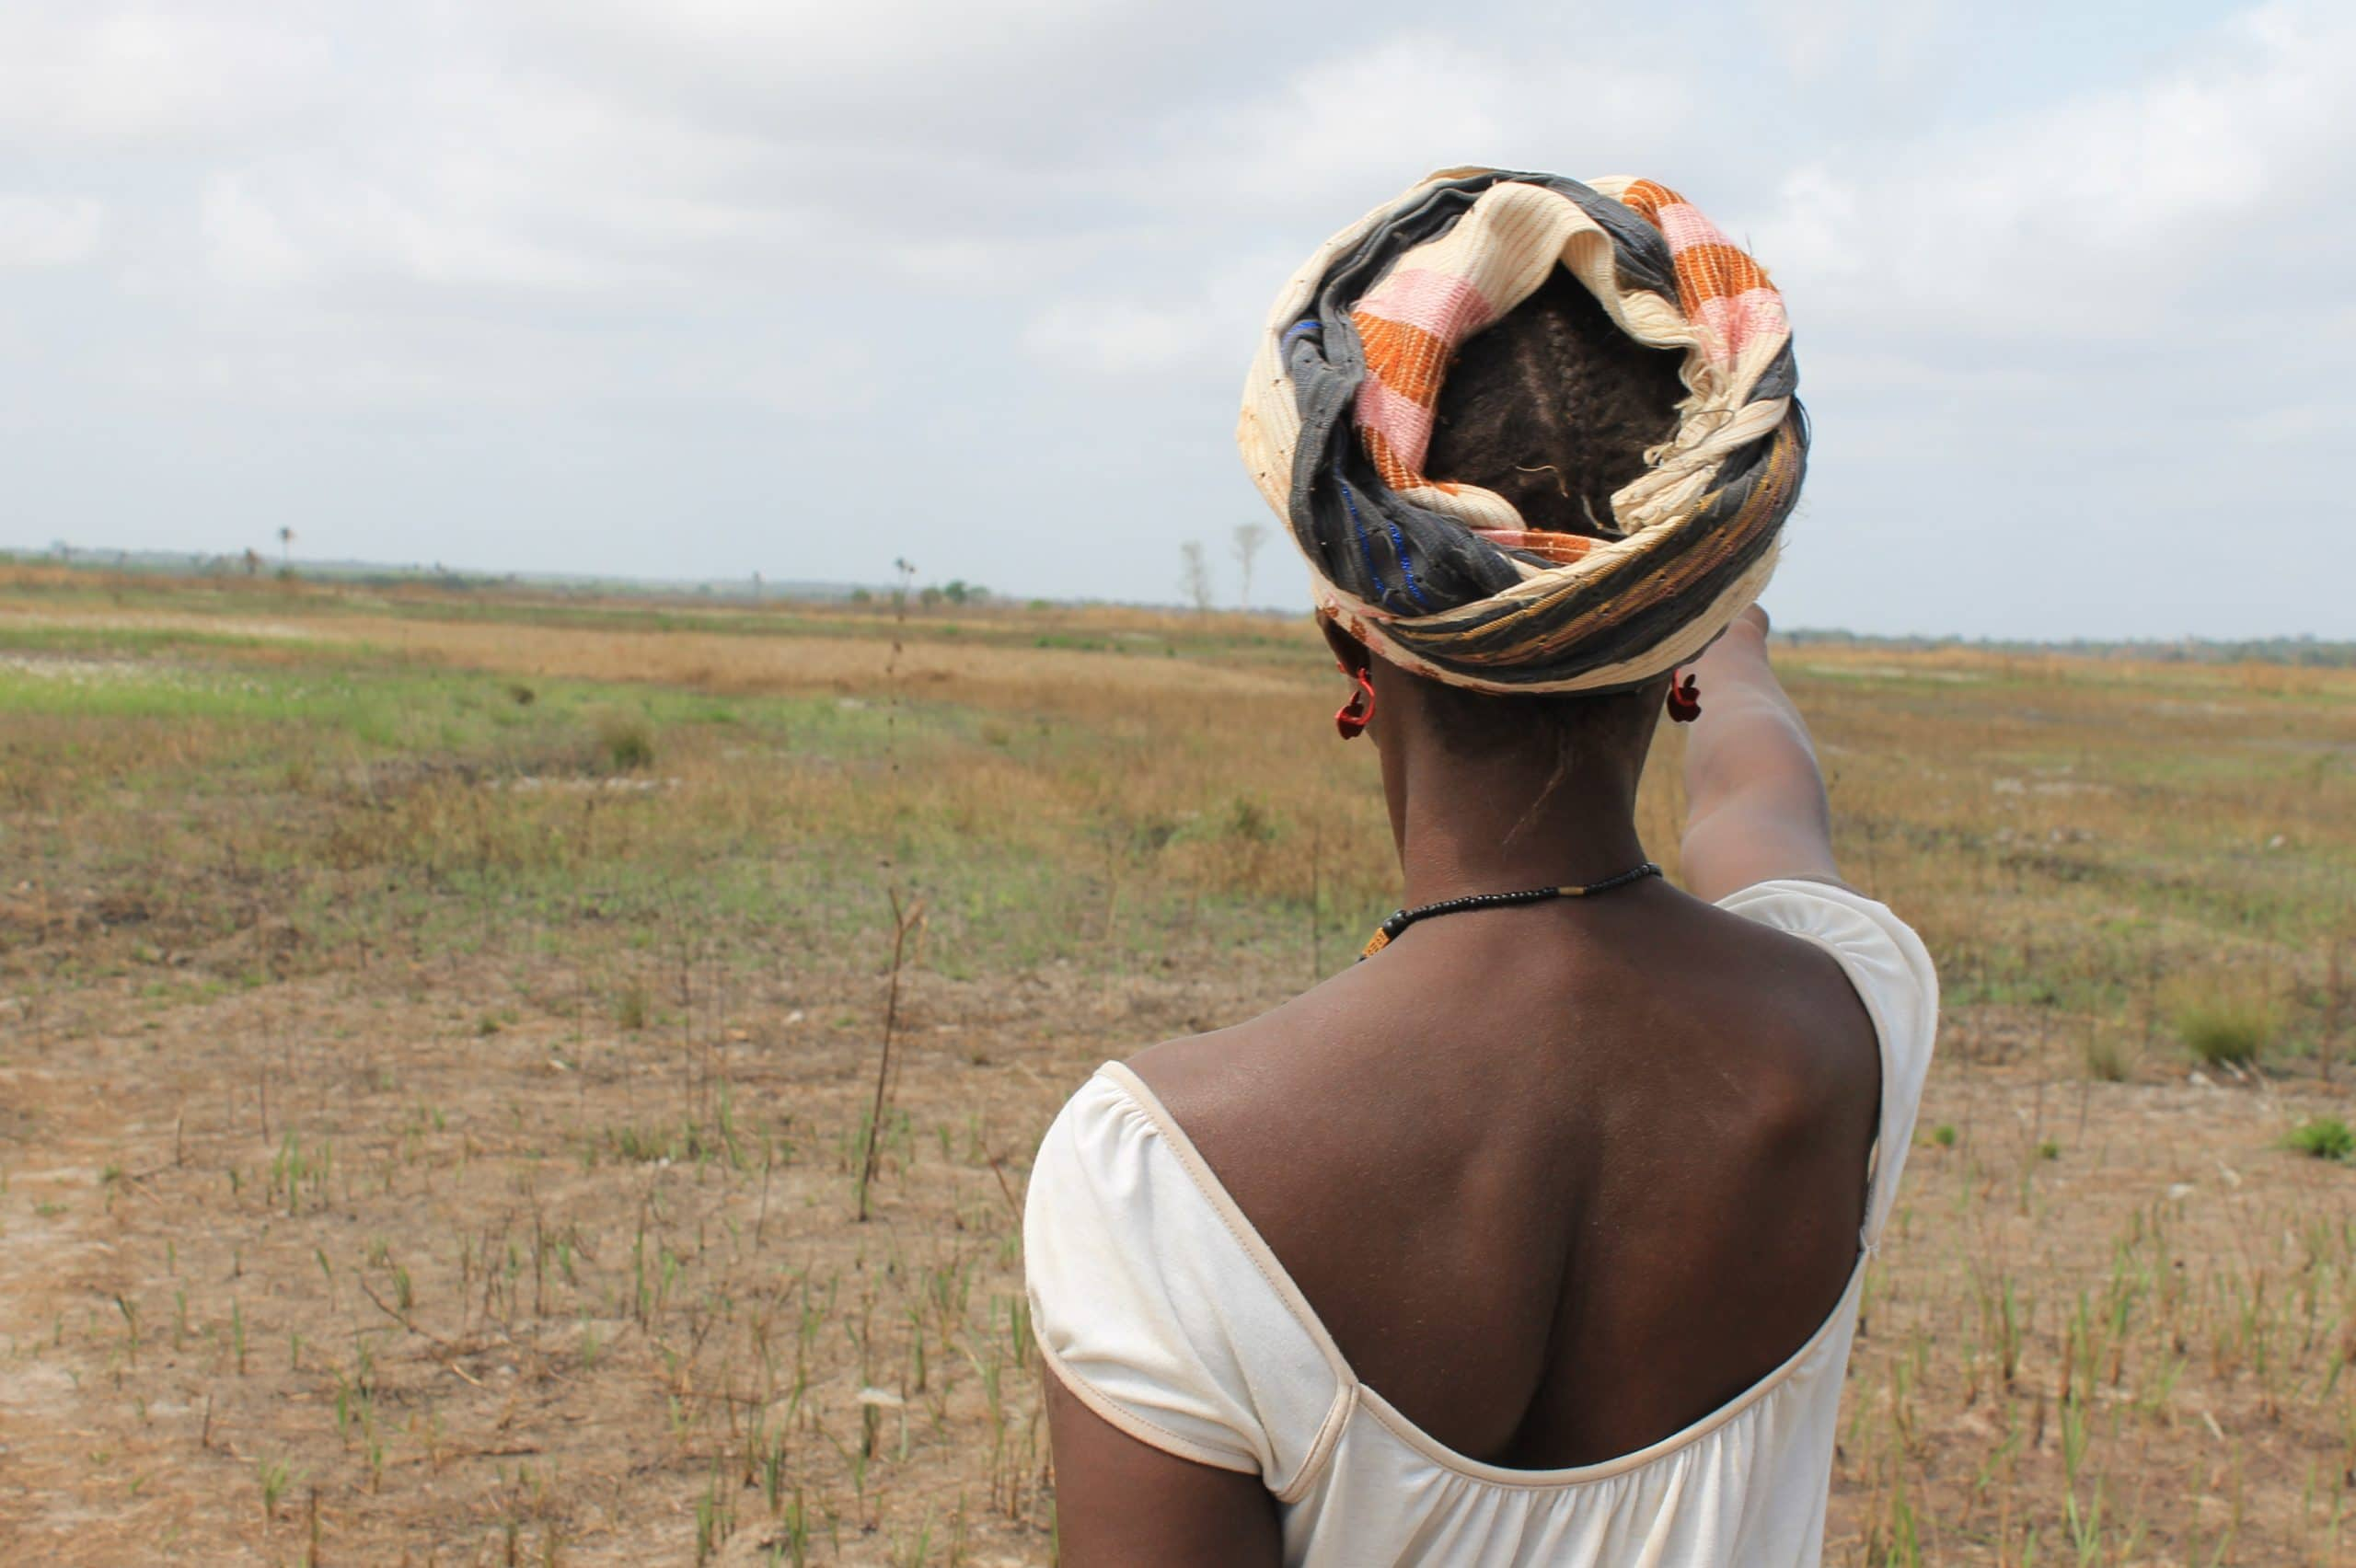 The Addax Bioenergy project in Sierra Leone was part funded by European development finance institutions and negatively impacted local communities' access to land and water.